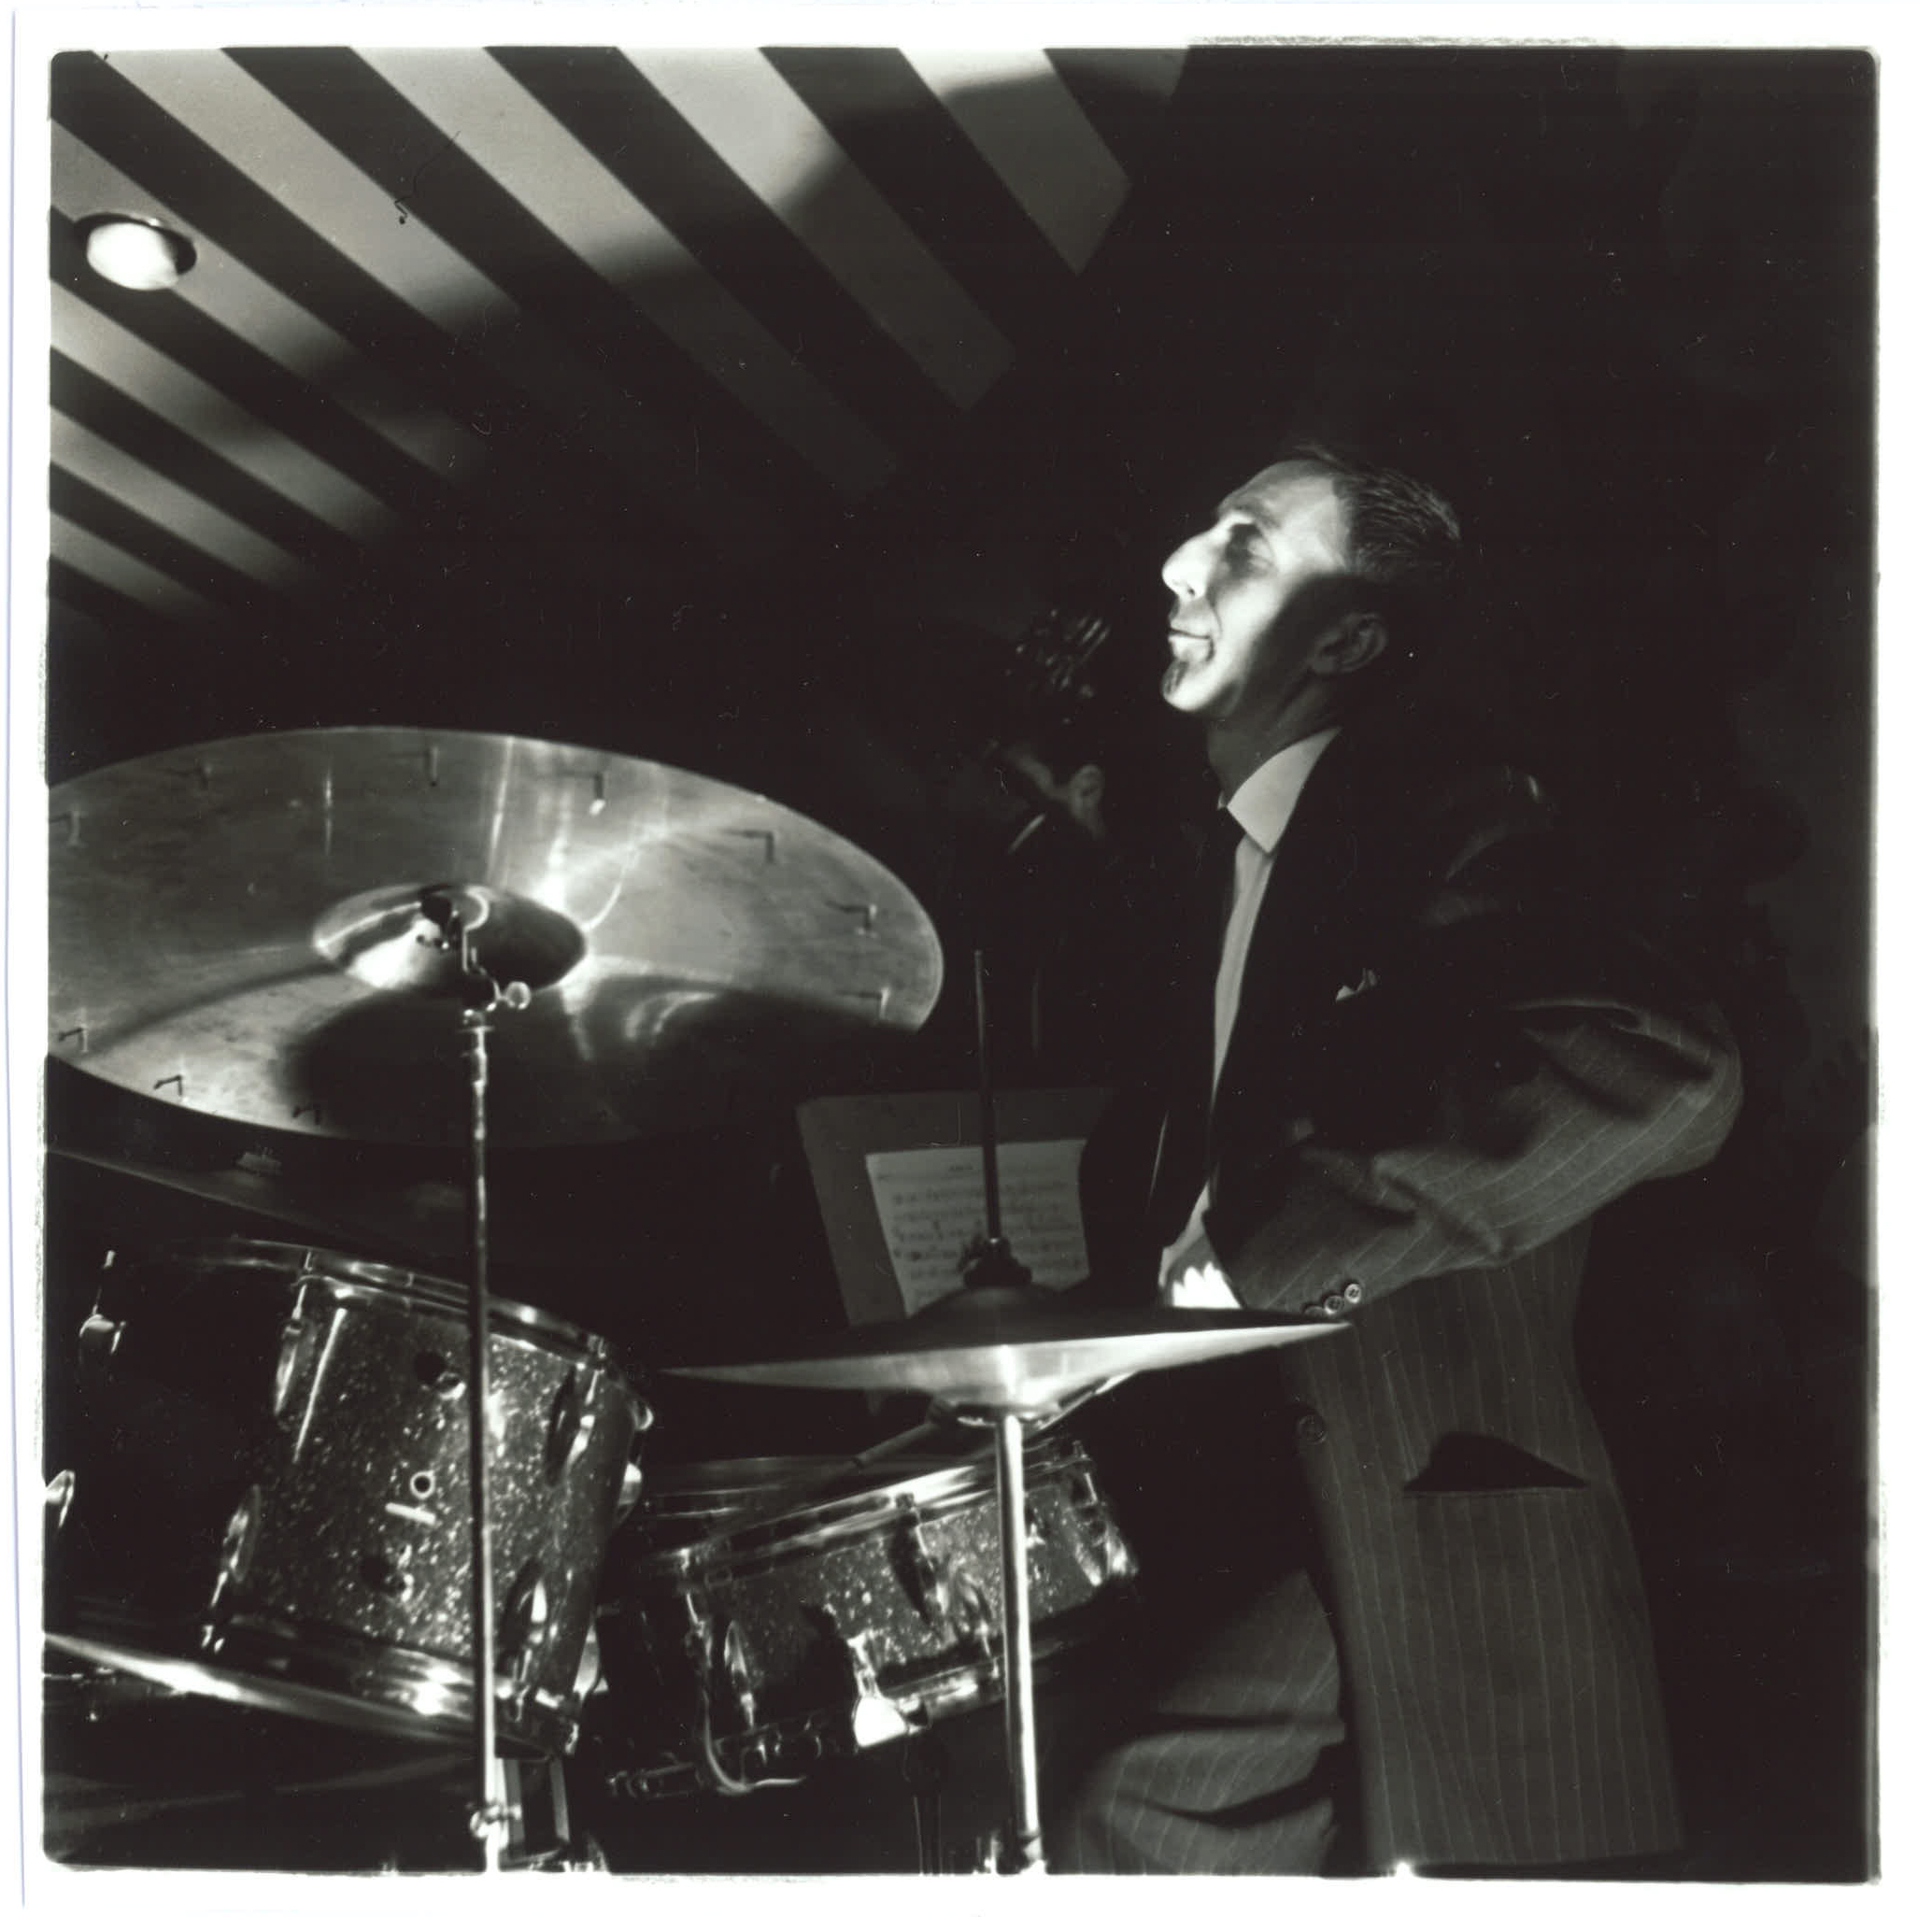 Phil Seamen at the Marquee 1960